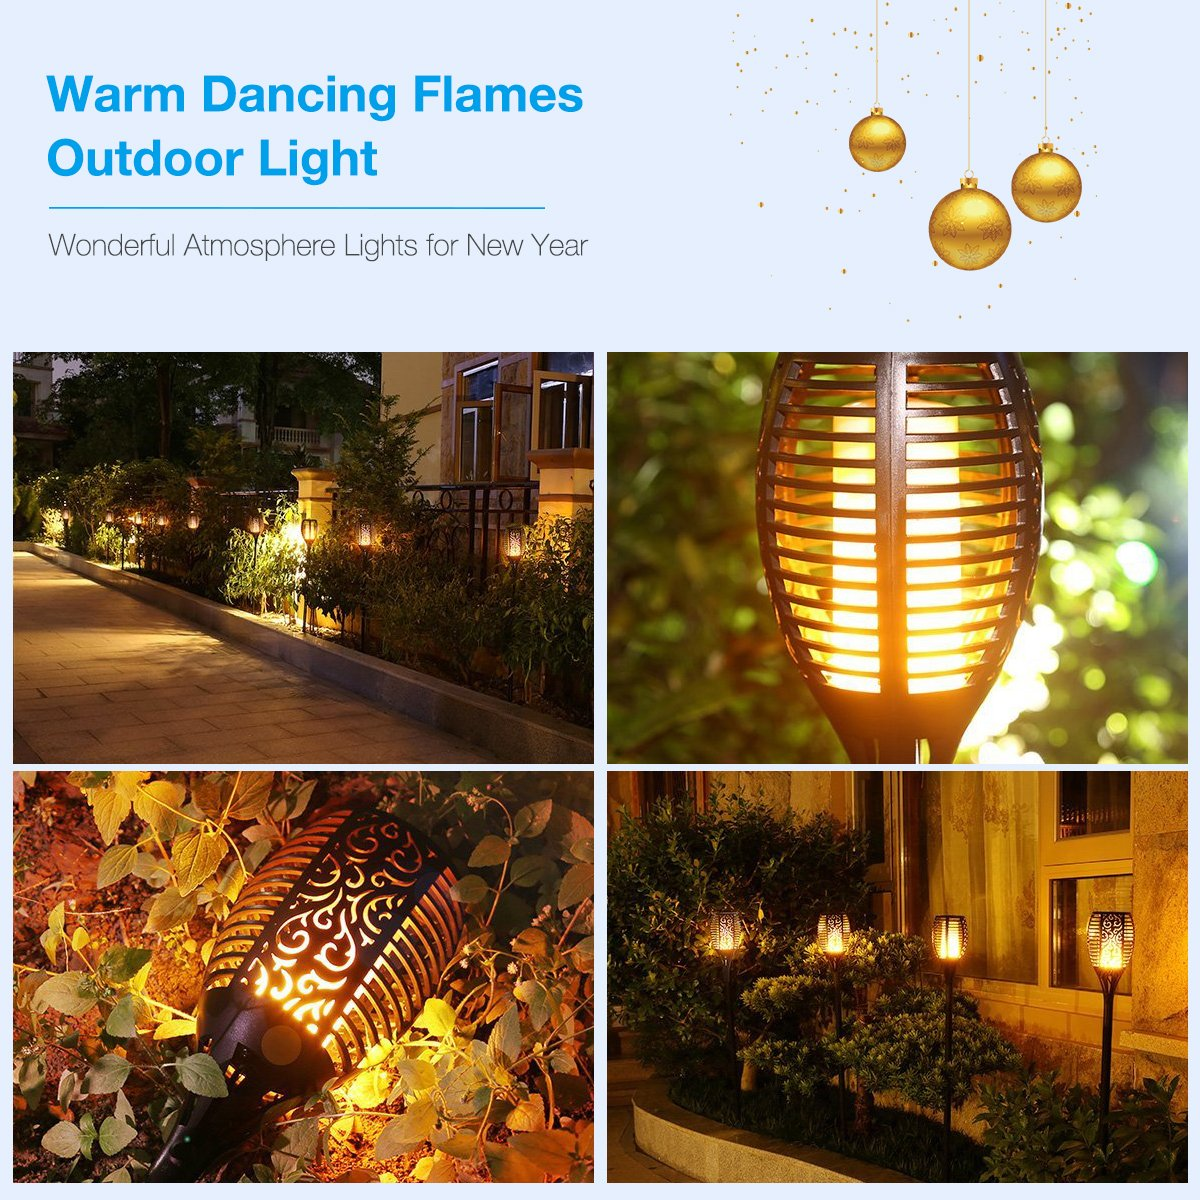 Solar Torch Lights, Poweradd IP67 Waterproof Flickering Dancing Flames Solar Powered Garden Decoration Lights Dust to Dawn Auto On/Off Landscape Warm Light for Patio, Pathway, Backyard